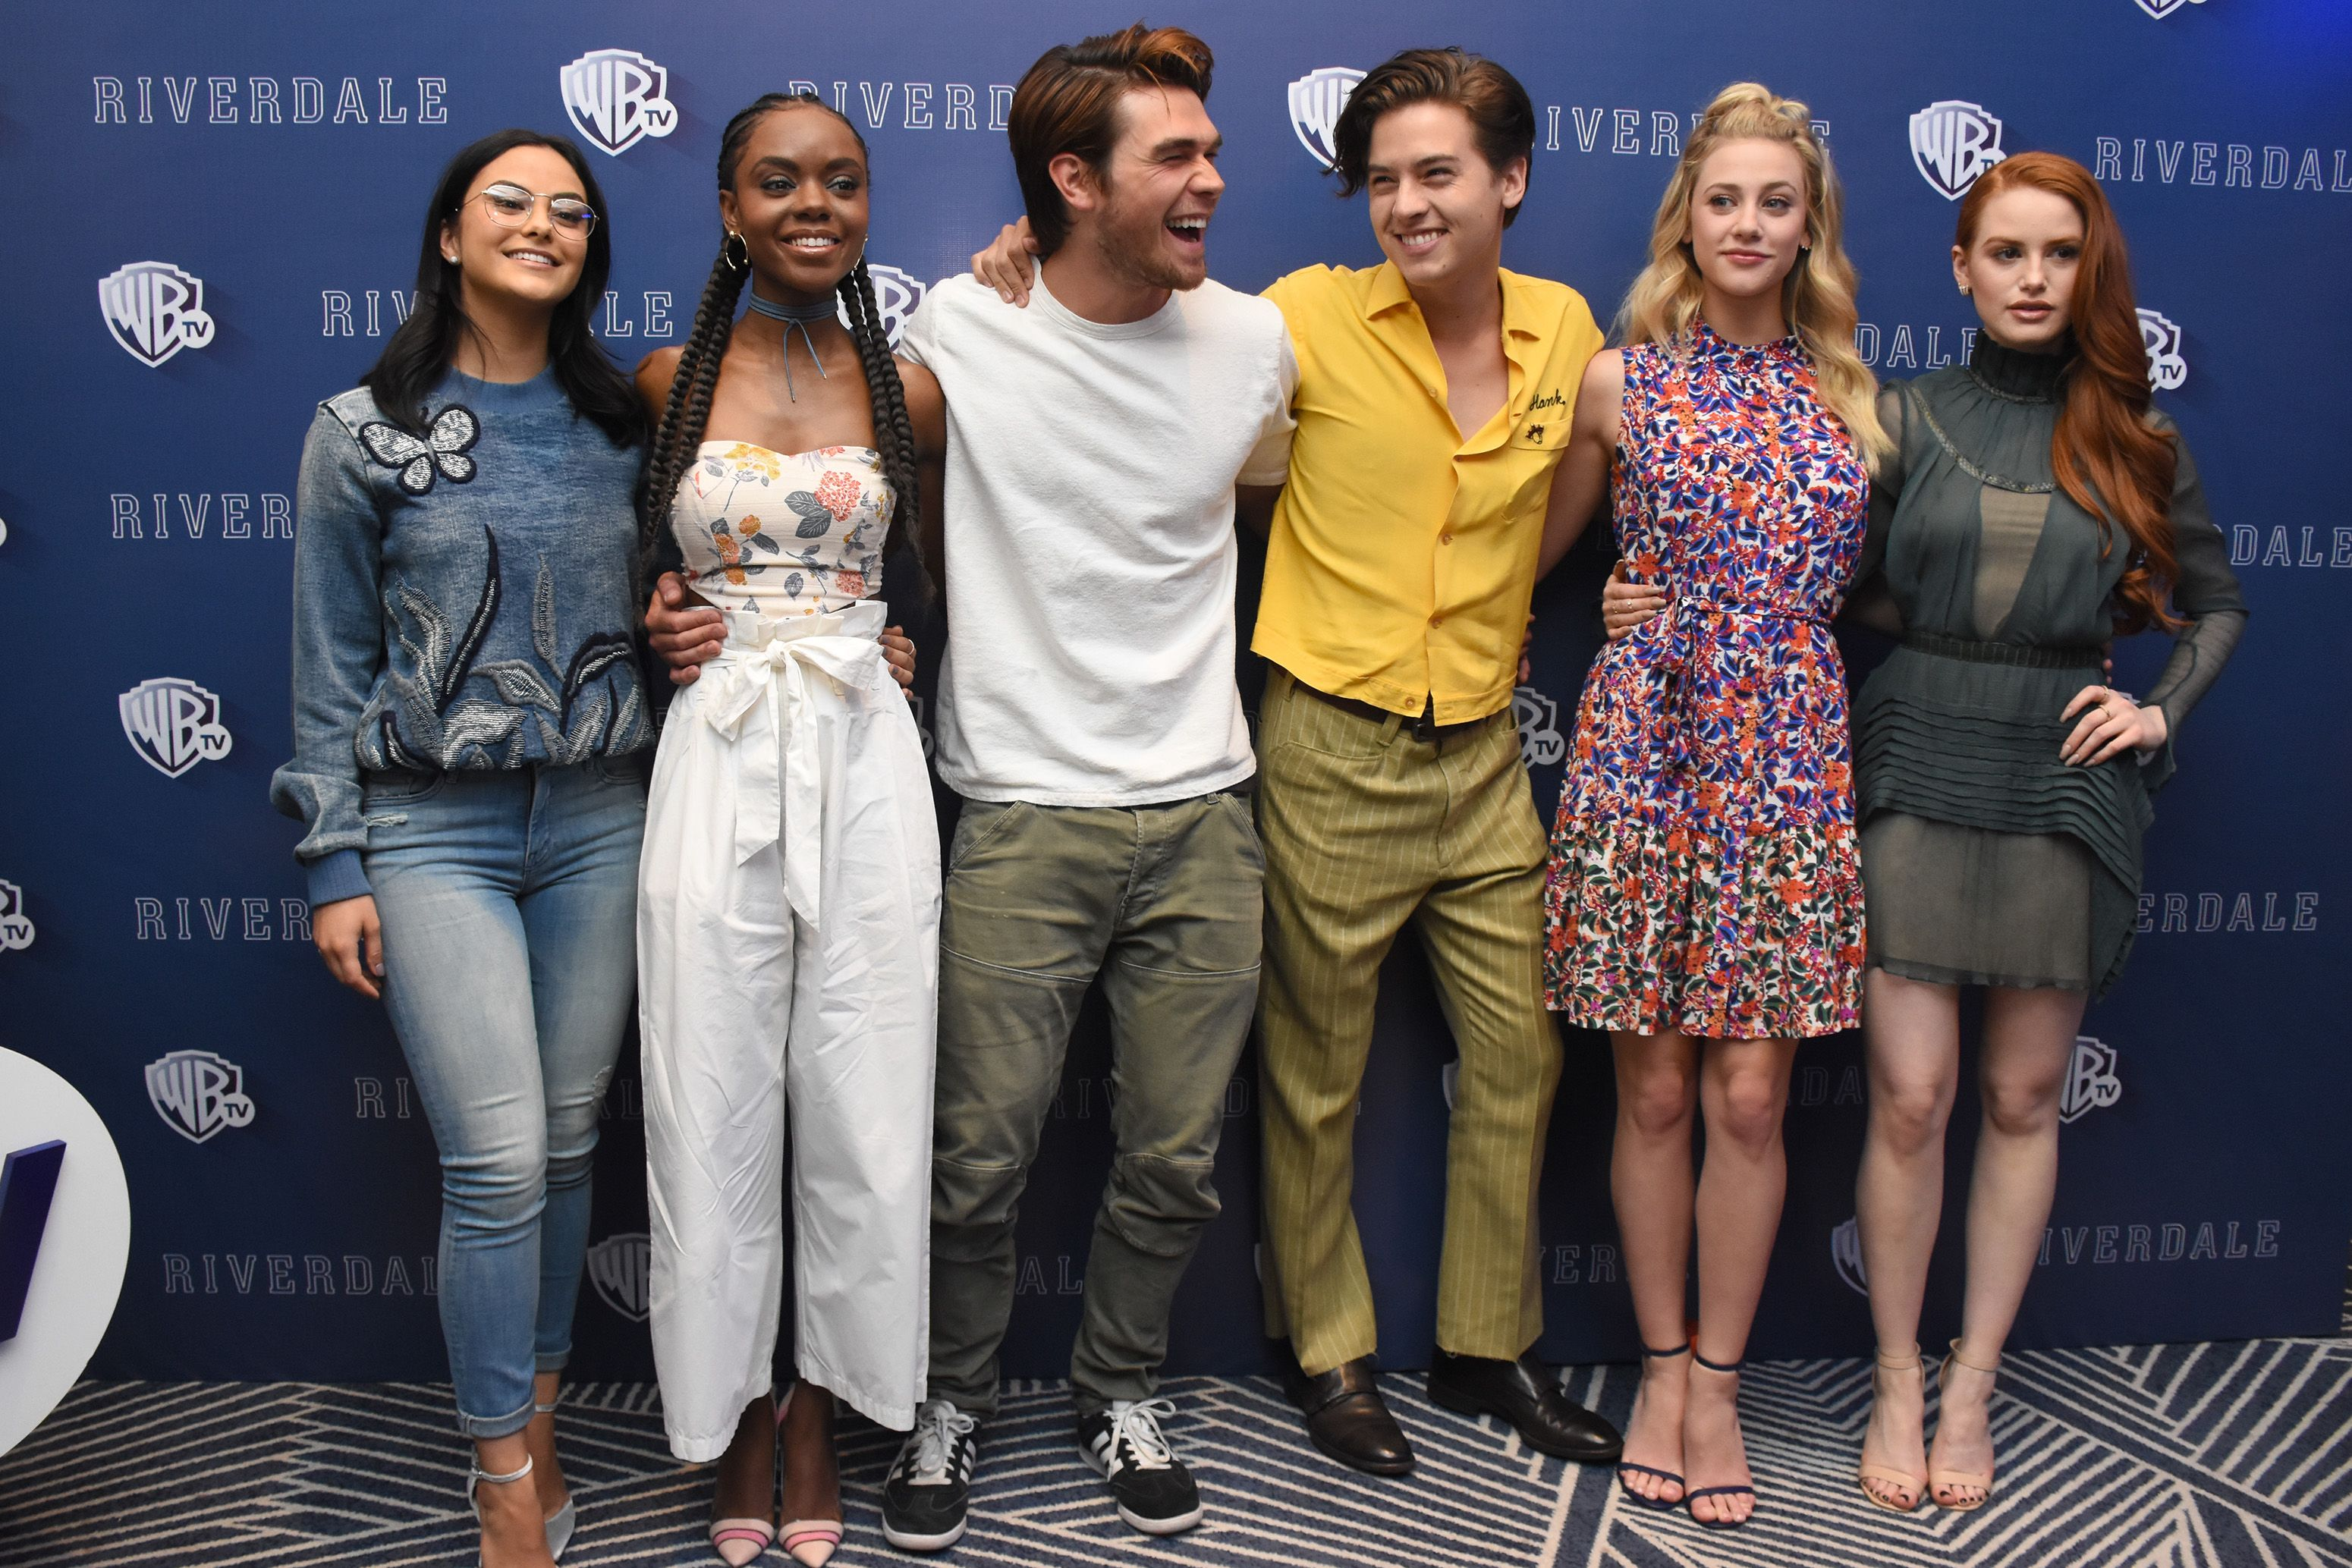 Riverdale Cast Photos - 40 Cute, Funny Pics of the The CW's